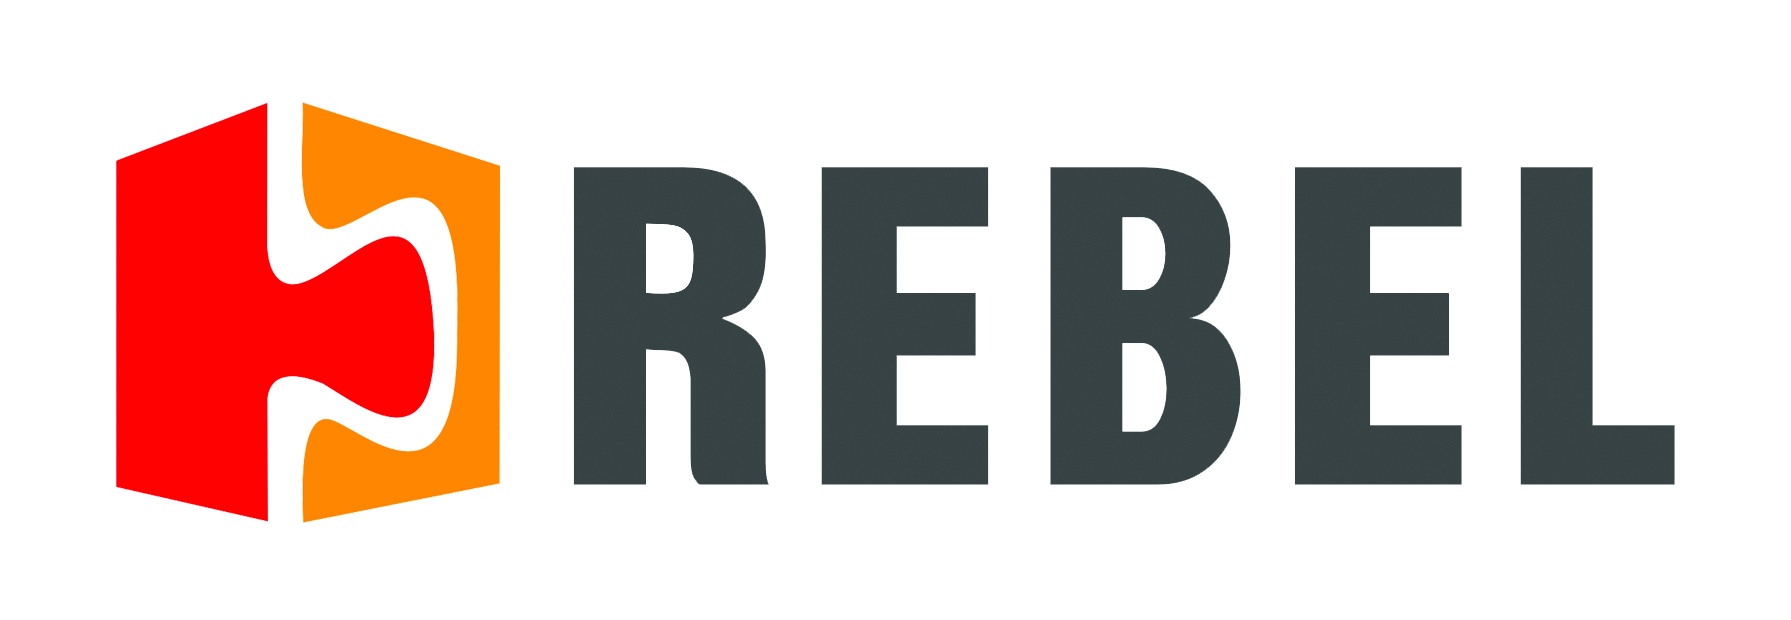 logo-rebel